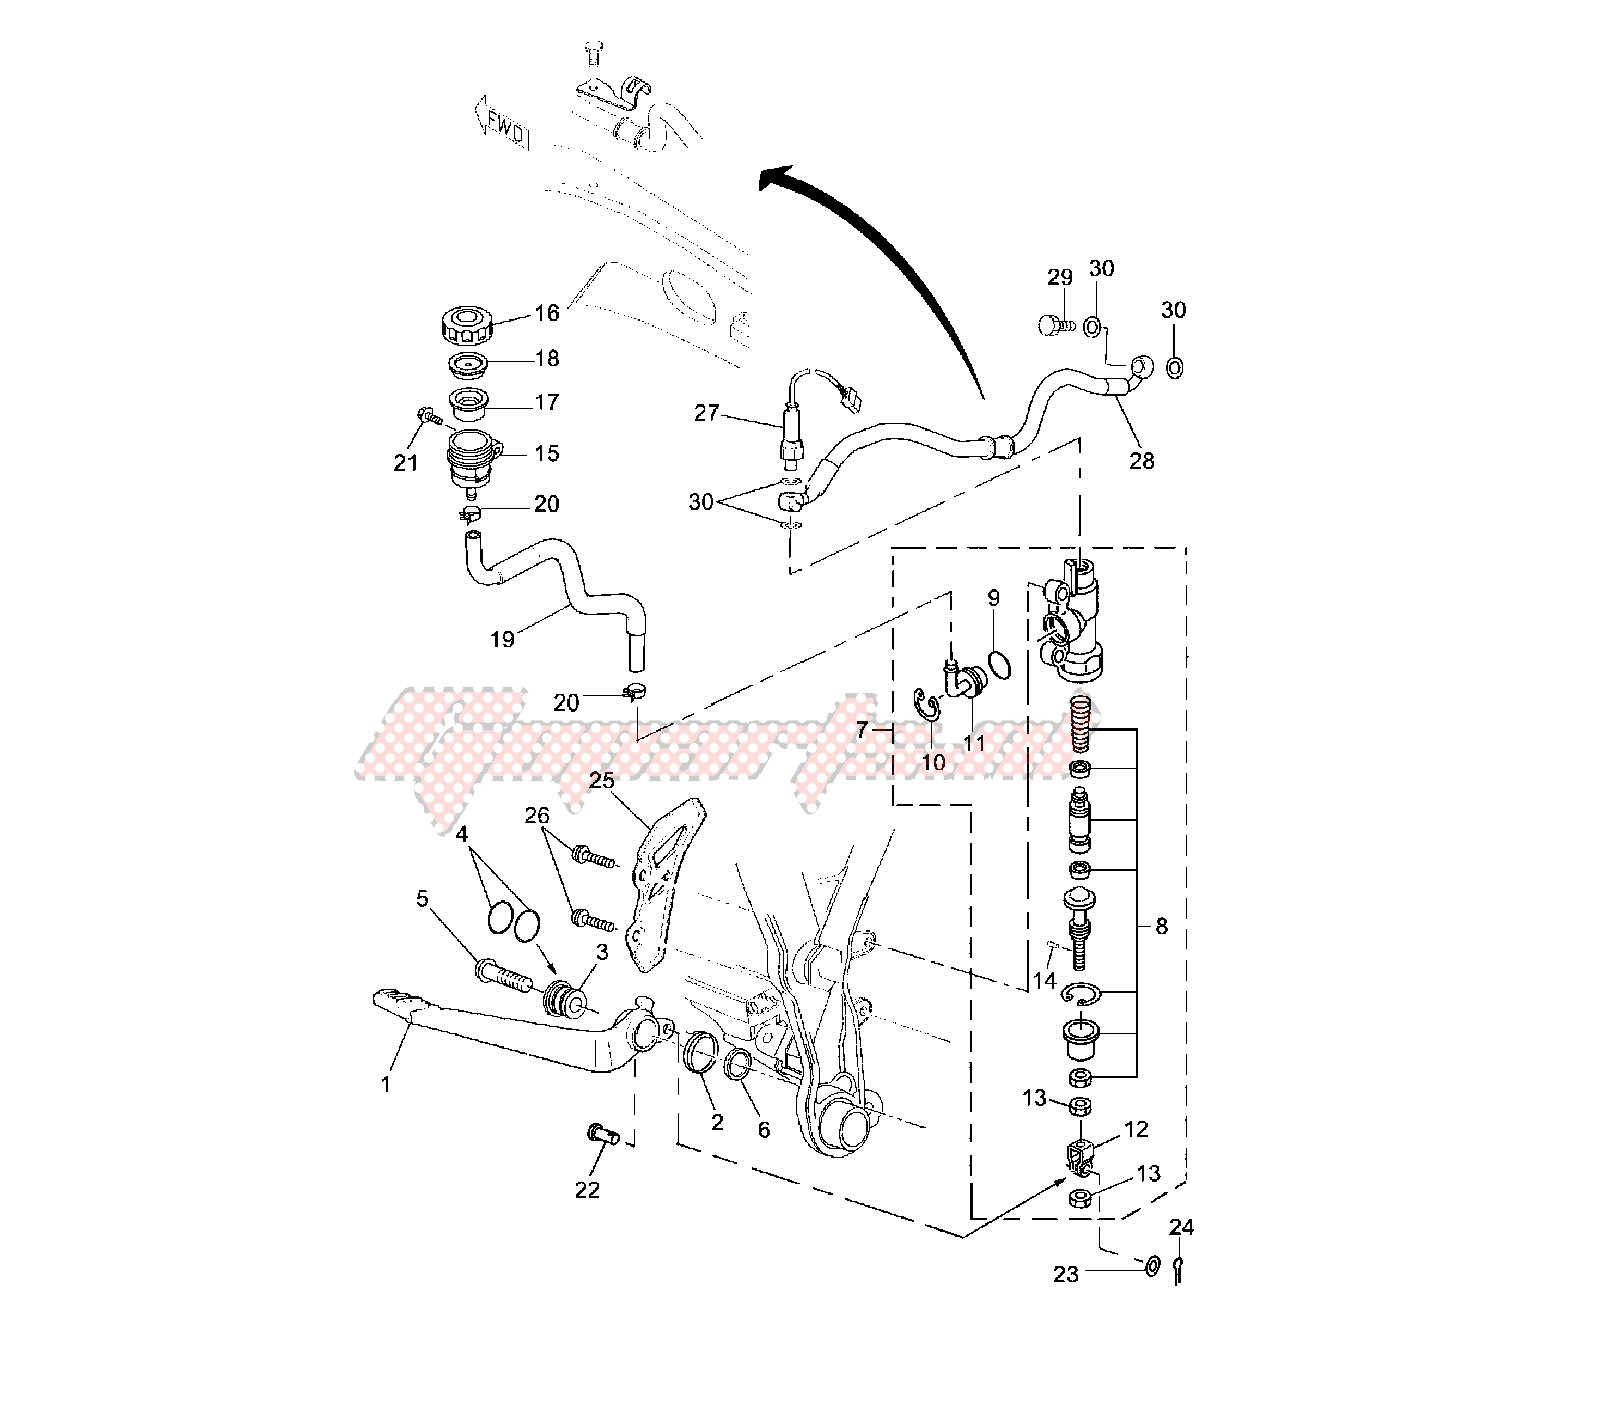 OEM parts Yamaha [Motorcycle] DT R - DT X 50 / 2006 | Goparts